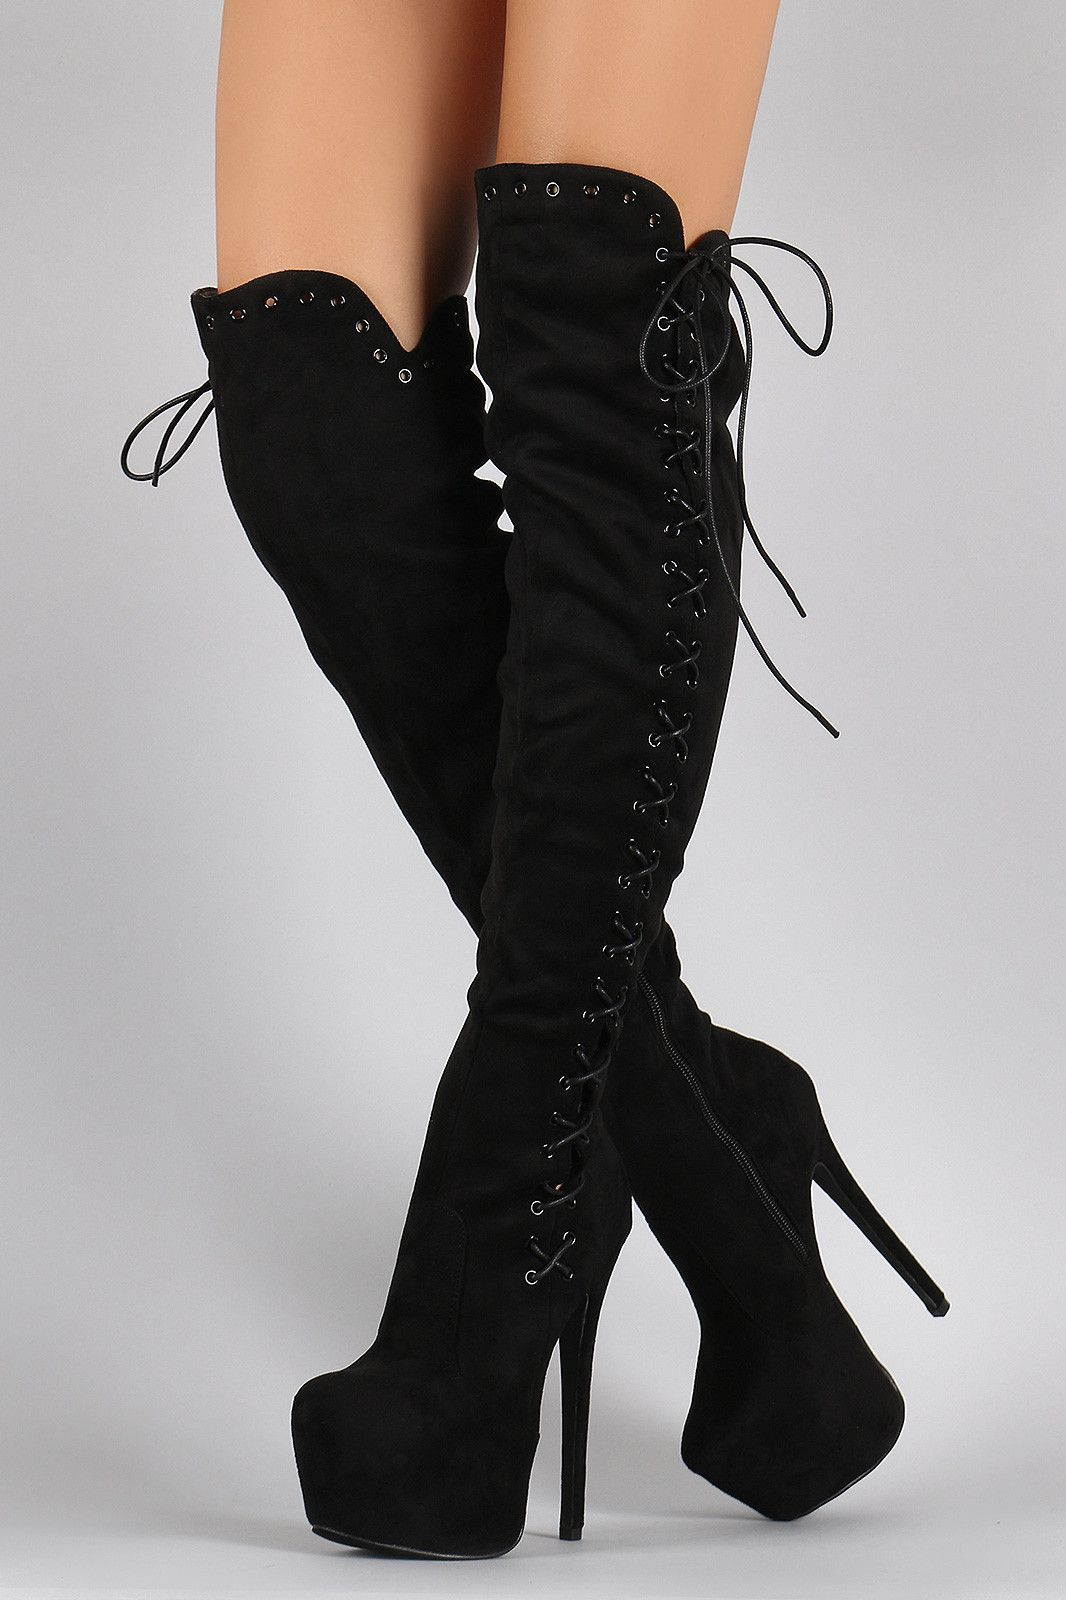 Suede Corset Lace Up Metal Eyelet Chunky Hidden Platform Stiletto Boots -  Sale! Up to 75% OFF! Shop at Stylizio for women s and men s designer  handbags 78eac8f24